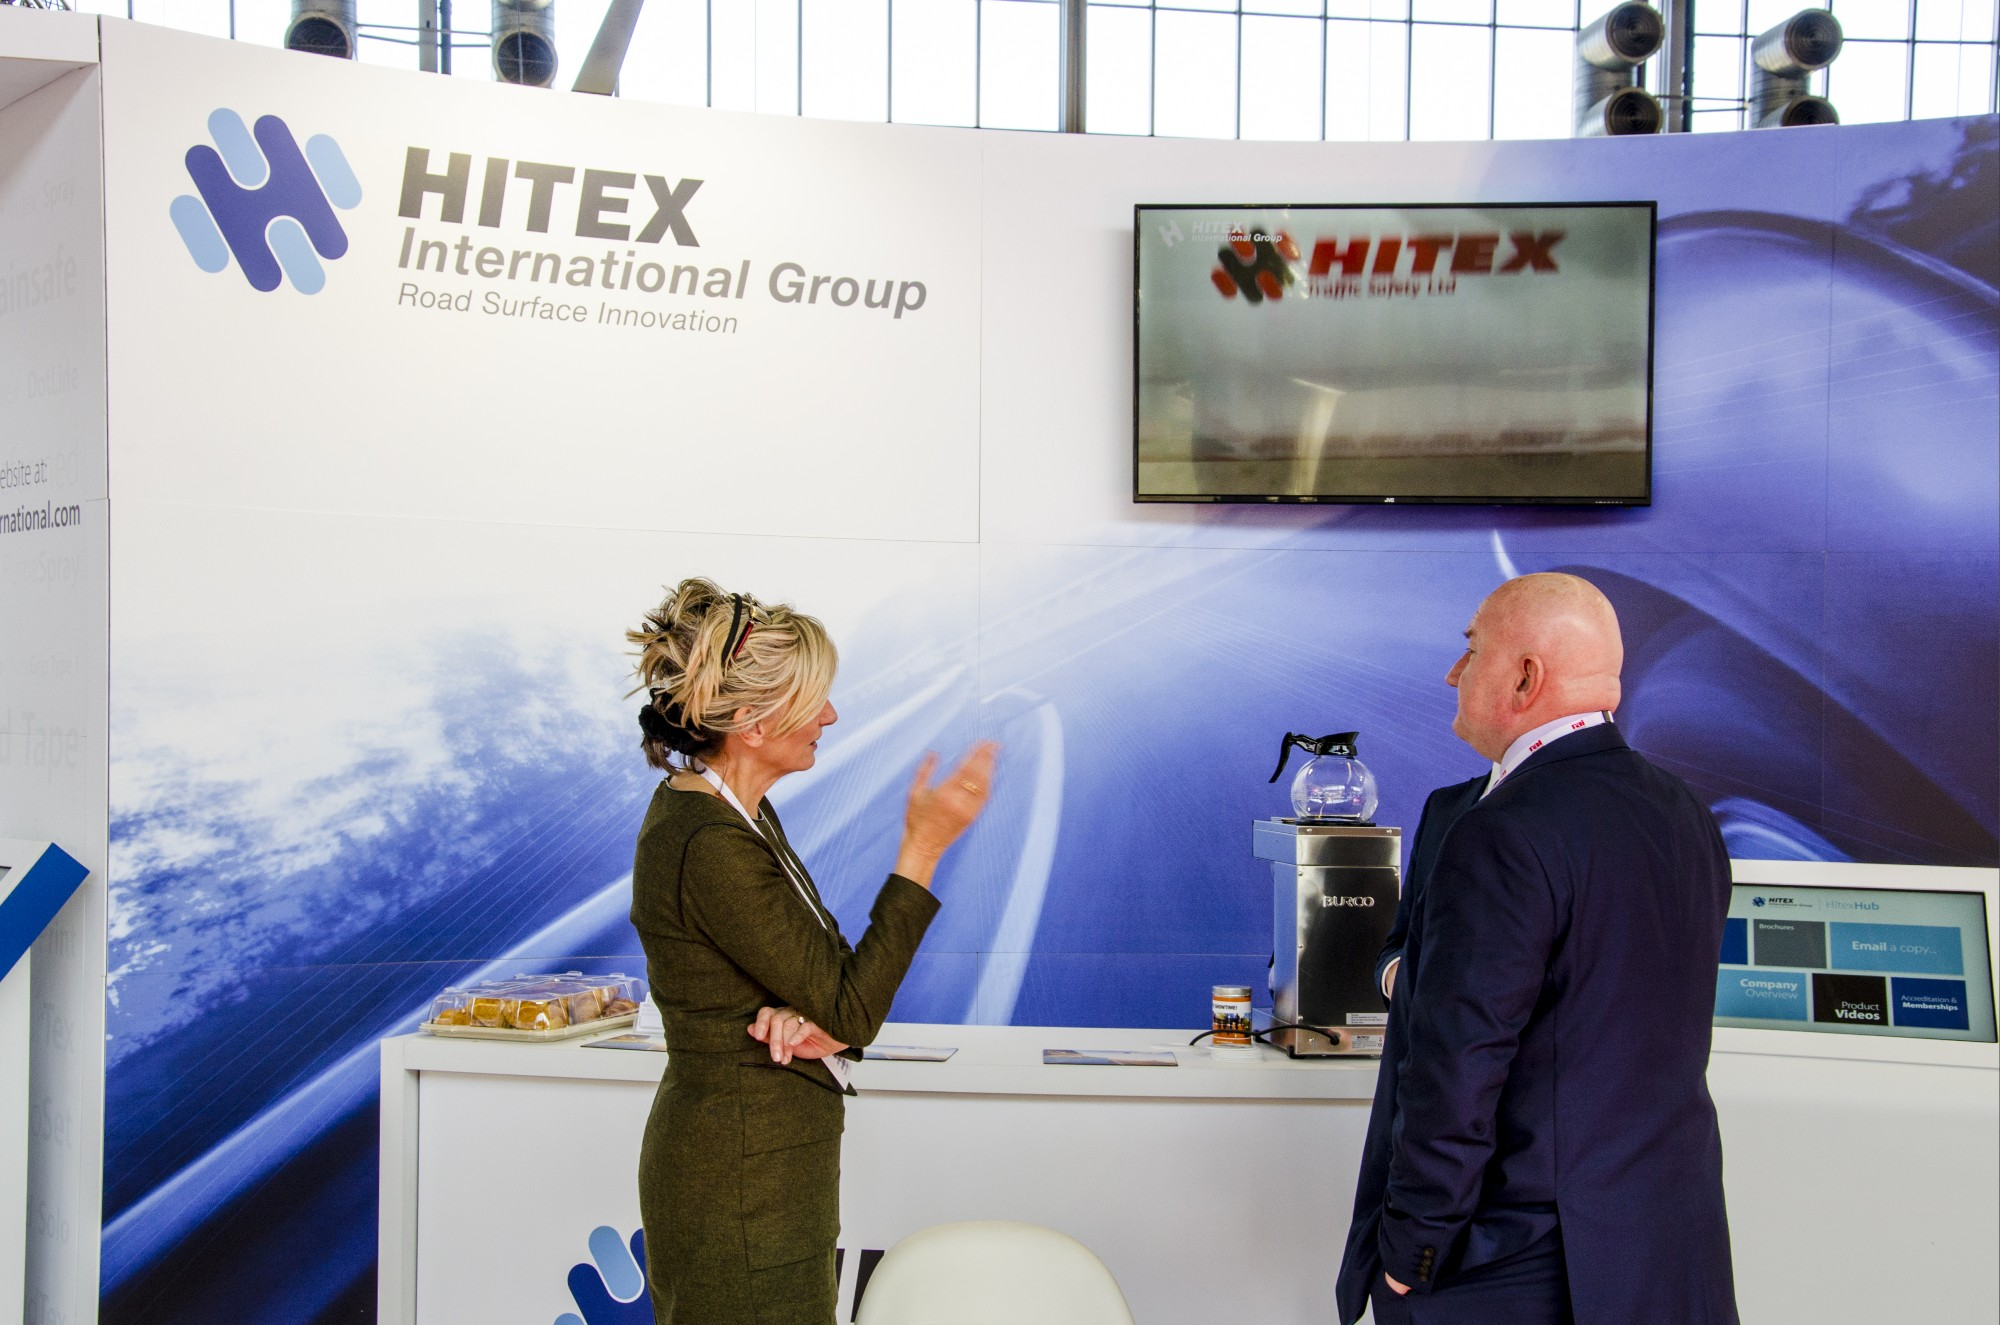 Hitex at Intertraffic 2018 17